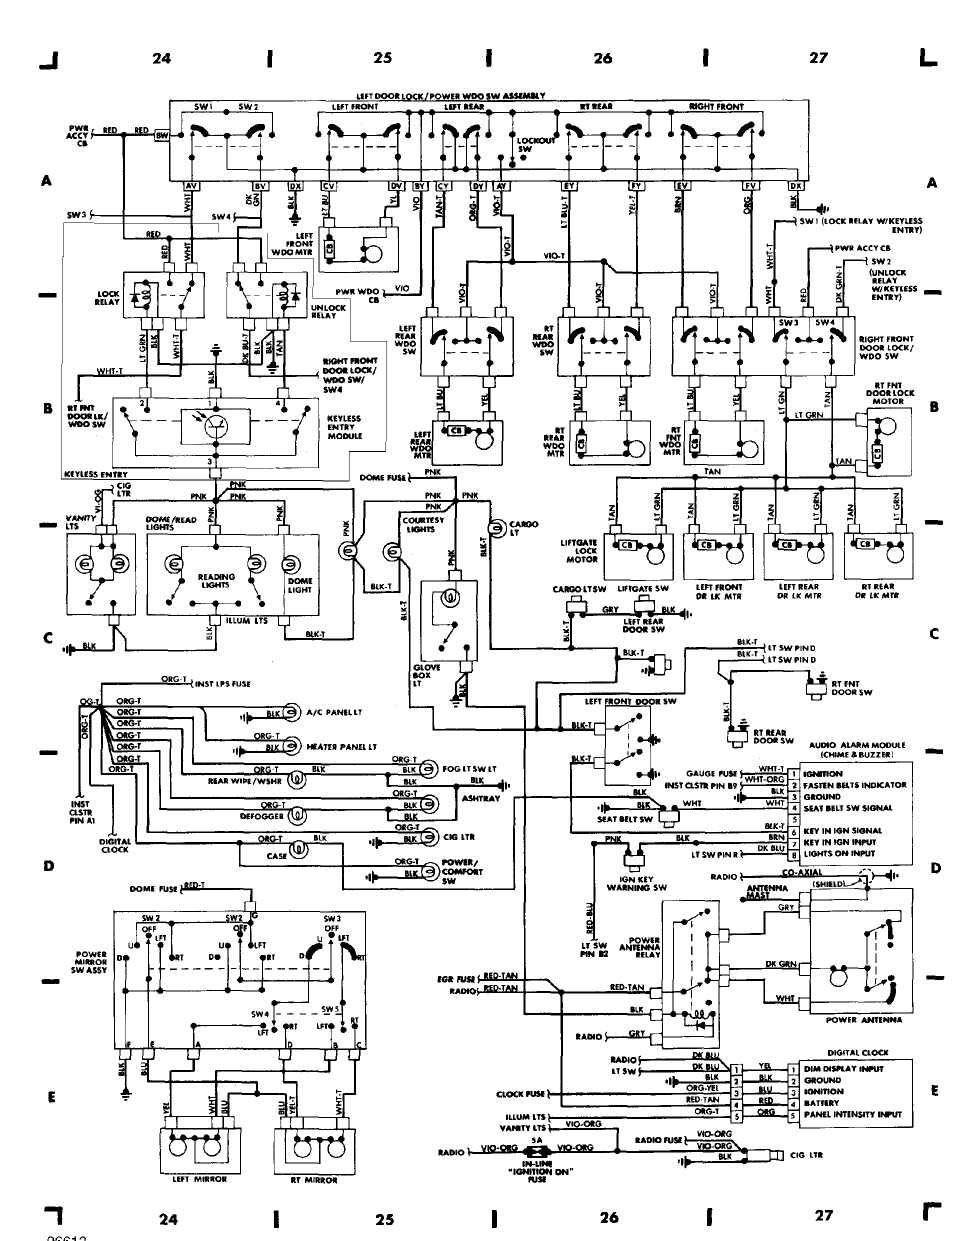 Detroit Diesel Vgtegr as well Fleetwood Wiring Diagrams also Full Wave Bridge Rectifier together with Instruction Pipeline  puter Architecture as well work security firewalls. on block diagram of computer